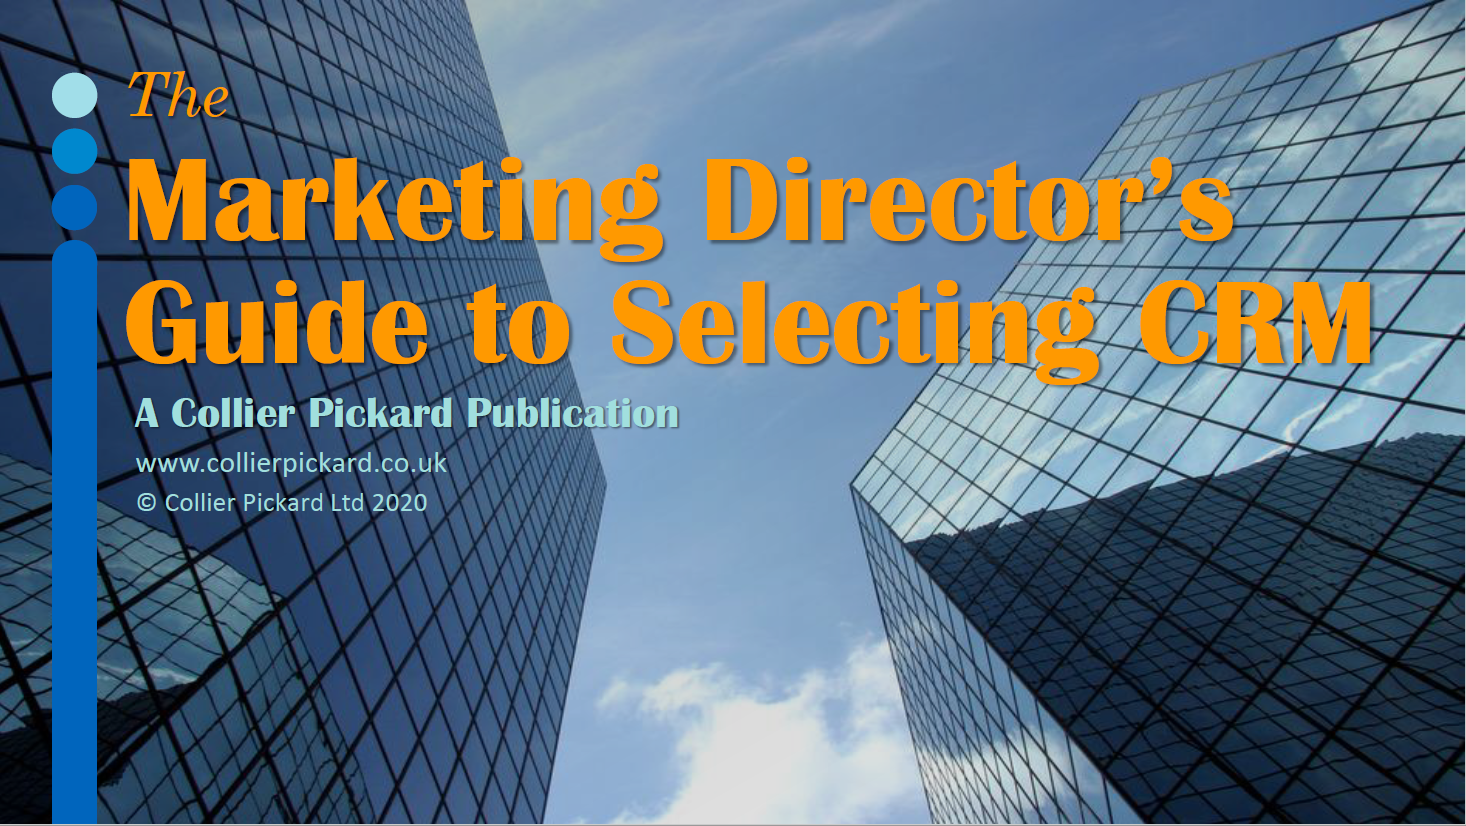 The Marketing Director's Guide to Selecting CRM